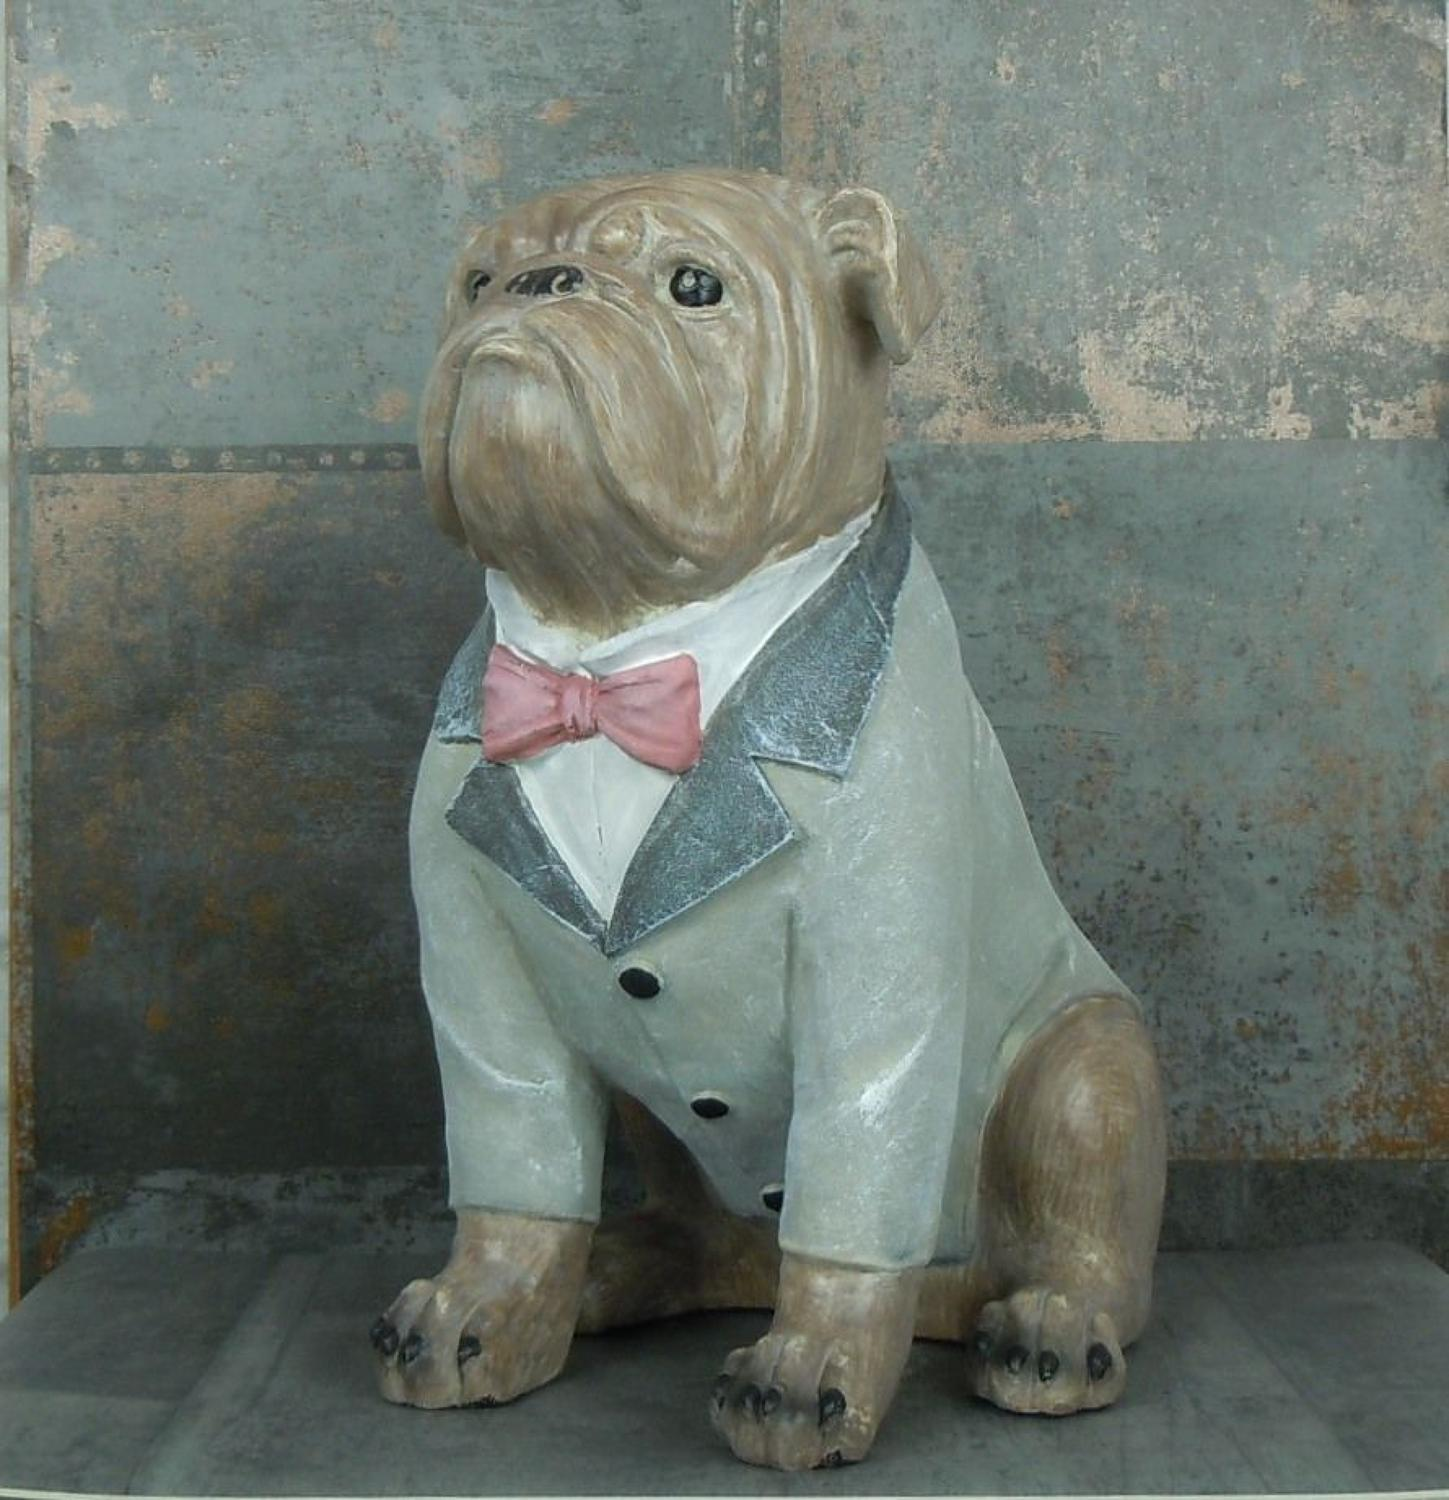 British Bulldog in a suit